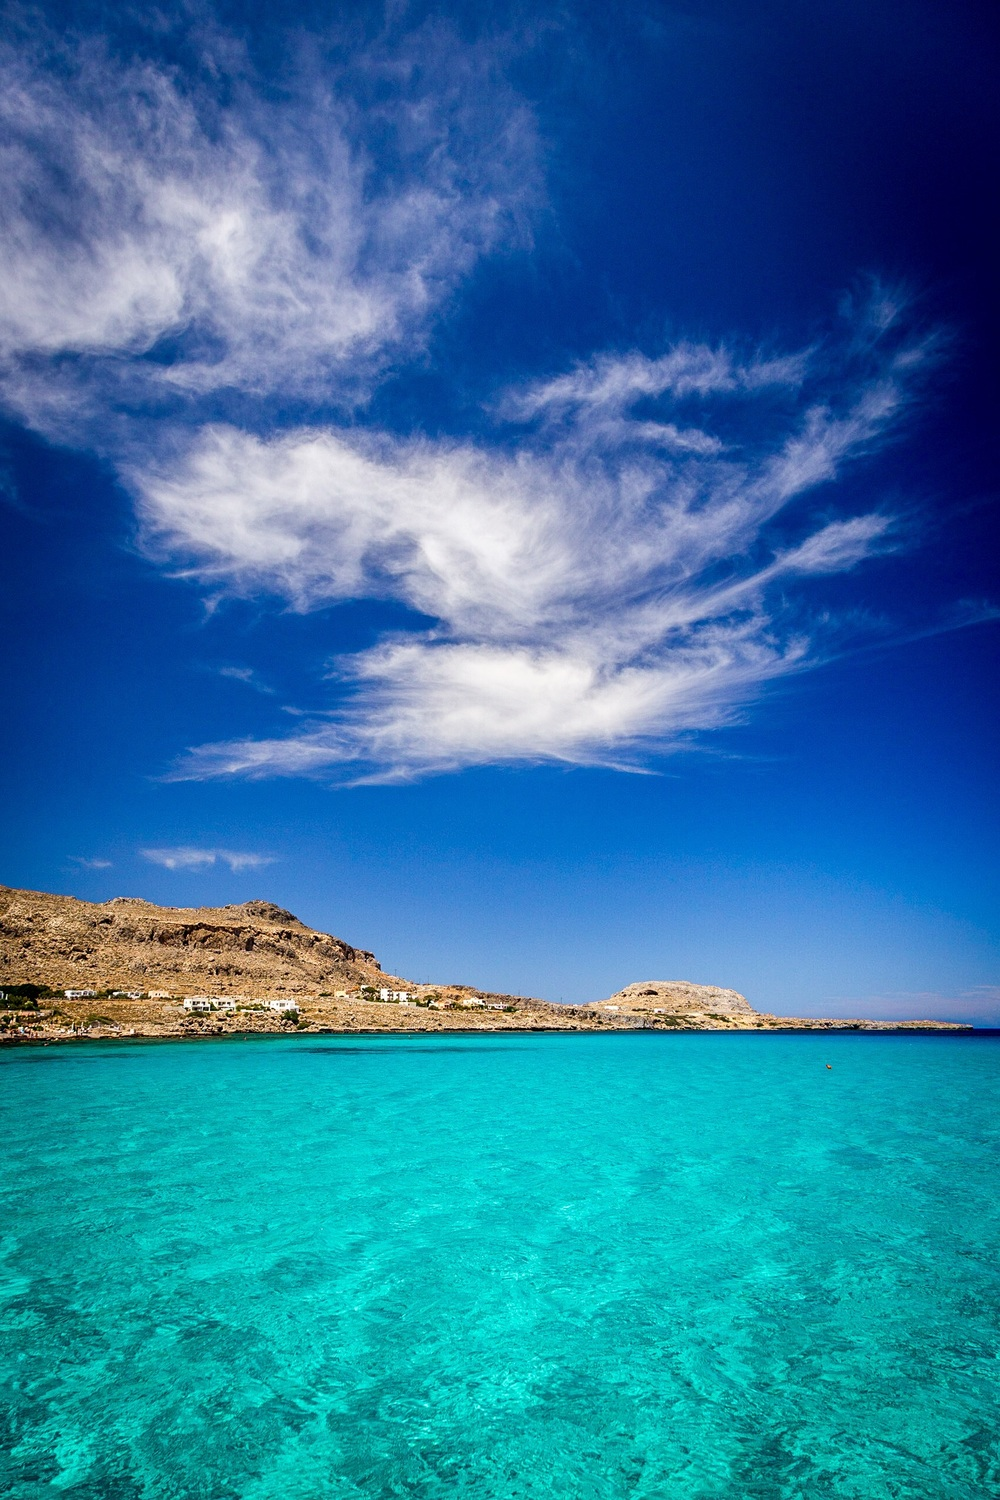 The Colours of Greece, Navarone Bay, Rhodes, Greece - landscape photography by Rick McEvoy